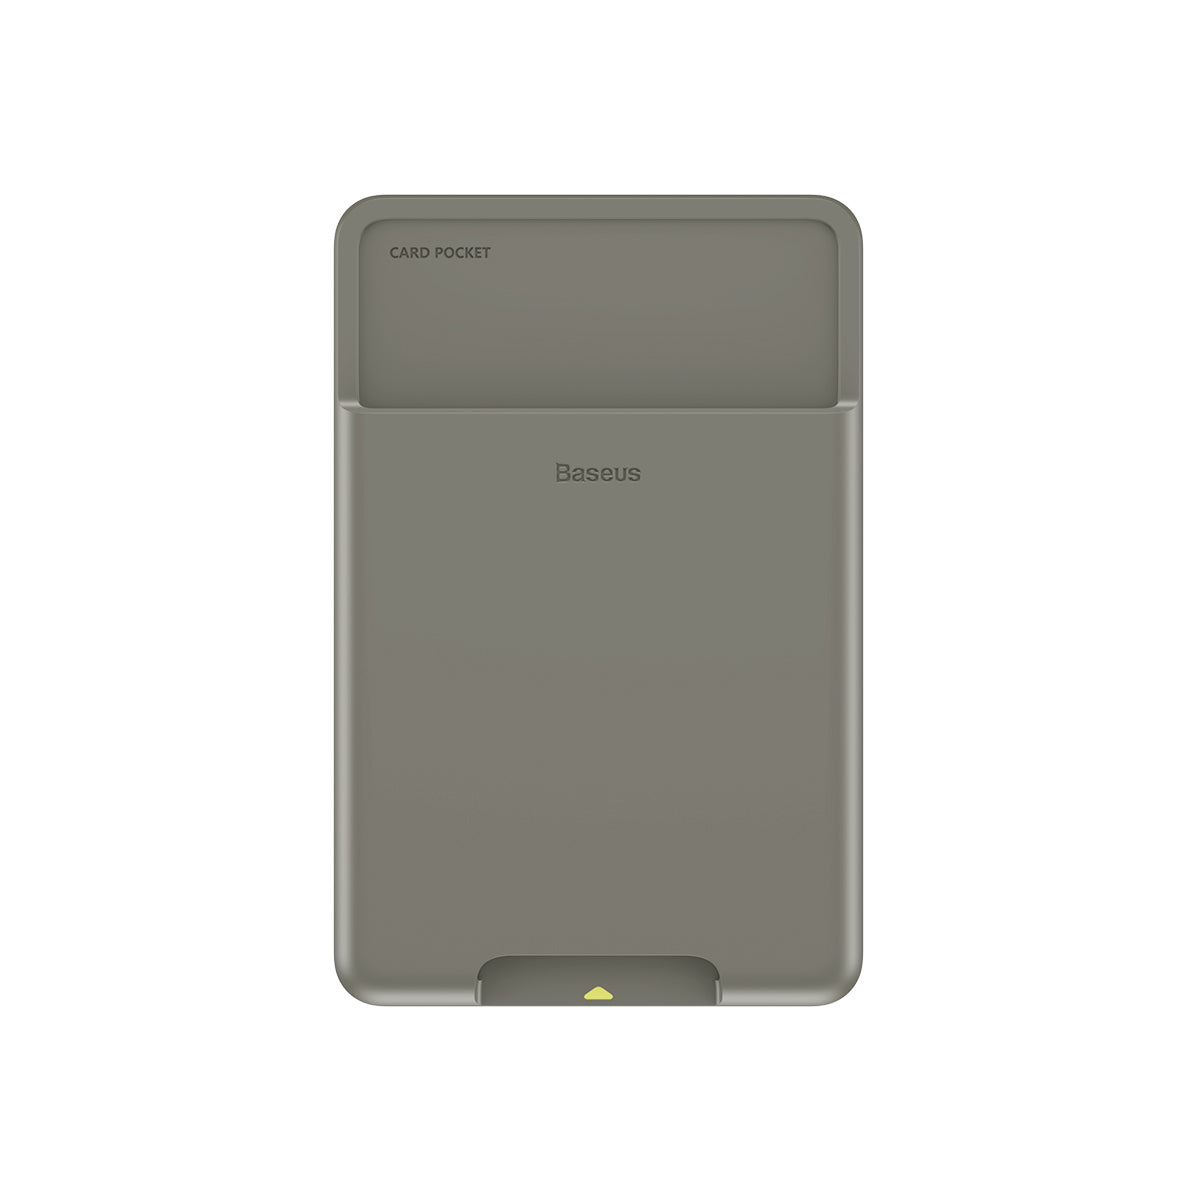 Baseus_Back_Sticker_Silicon_Card_Holder_Dark_Grey_Front_S767SQOBBYSU.jpg